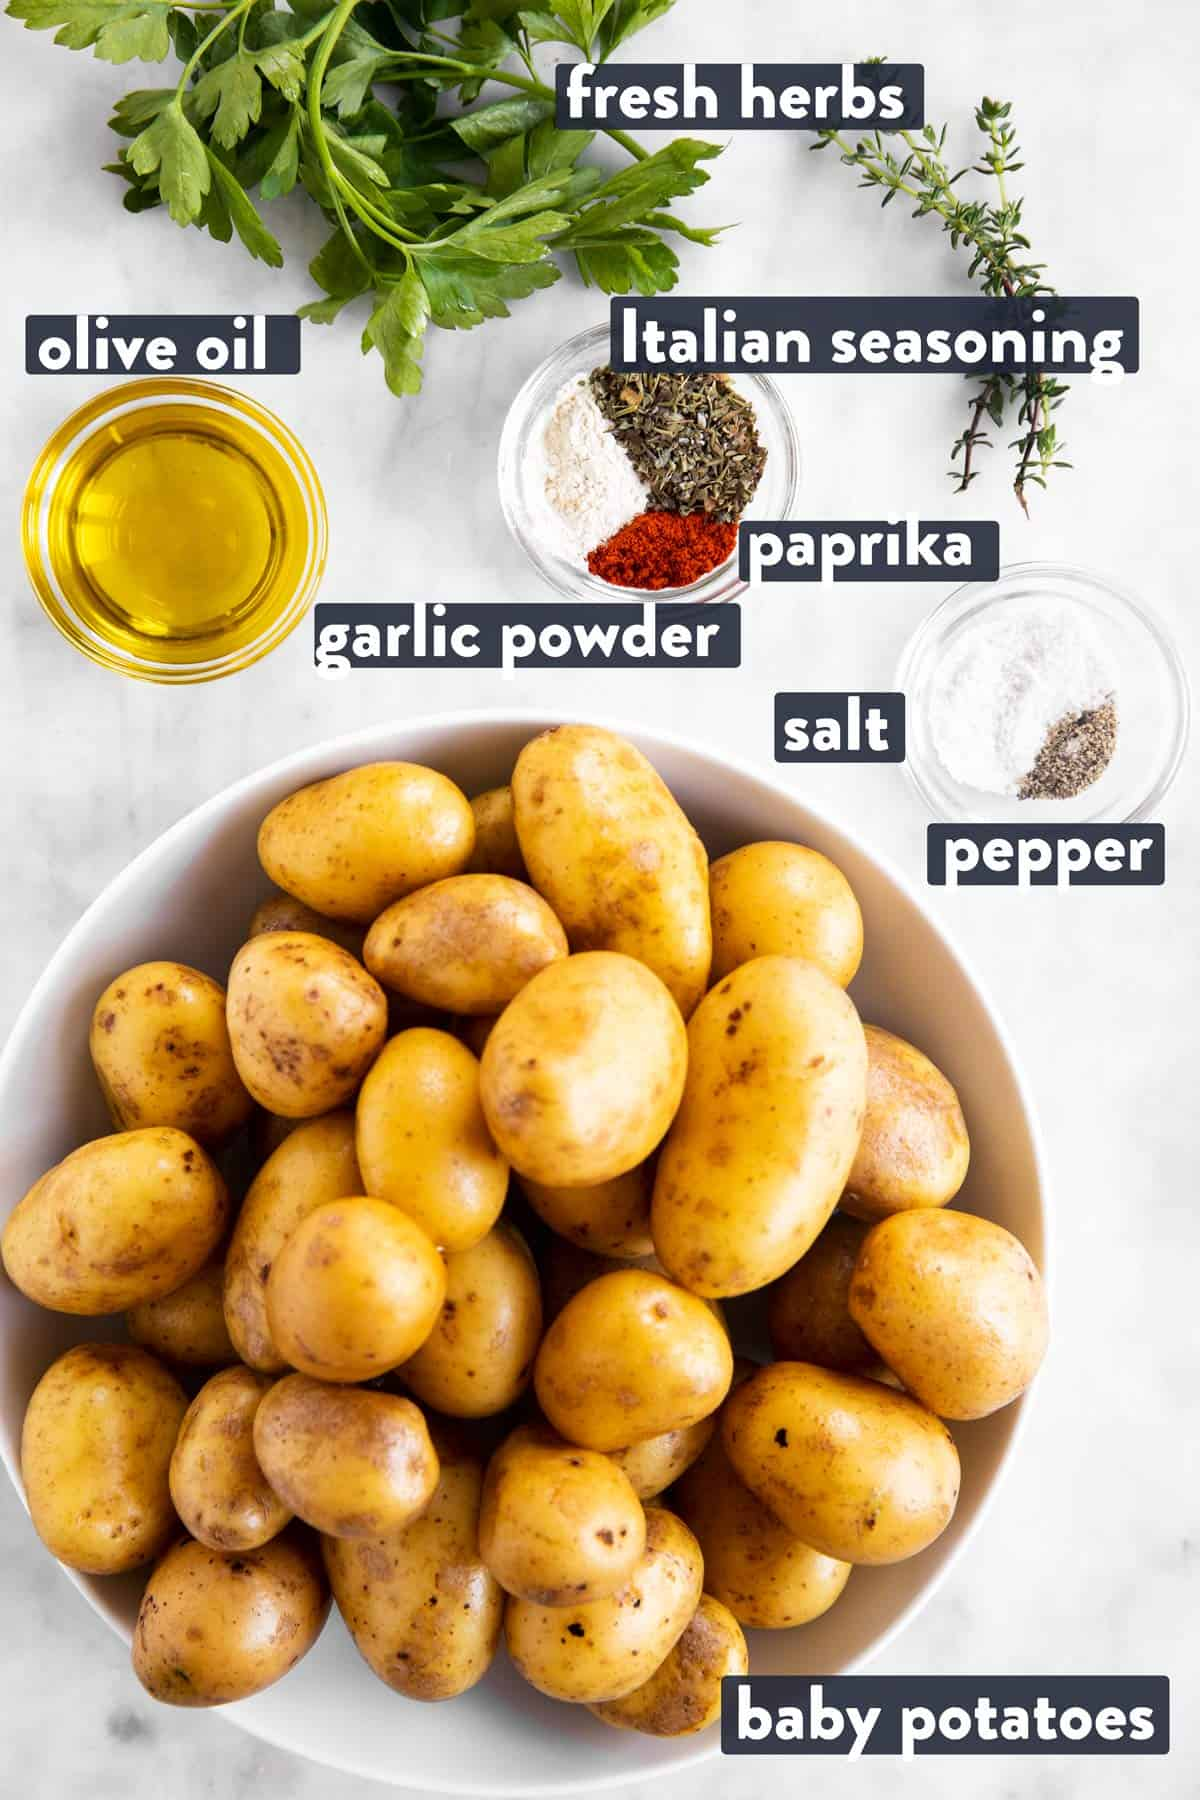 ingredients for roasted baby potatoes with text labels